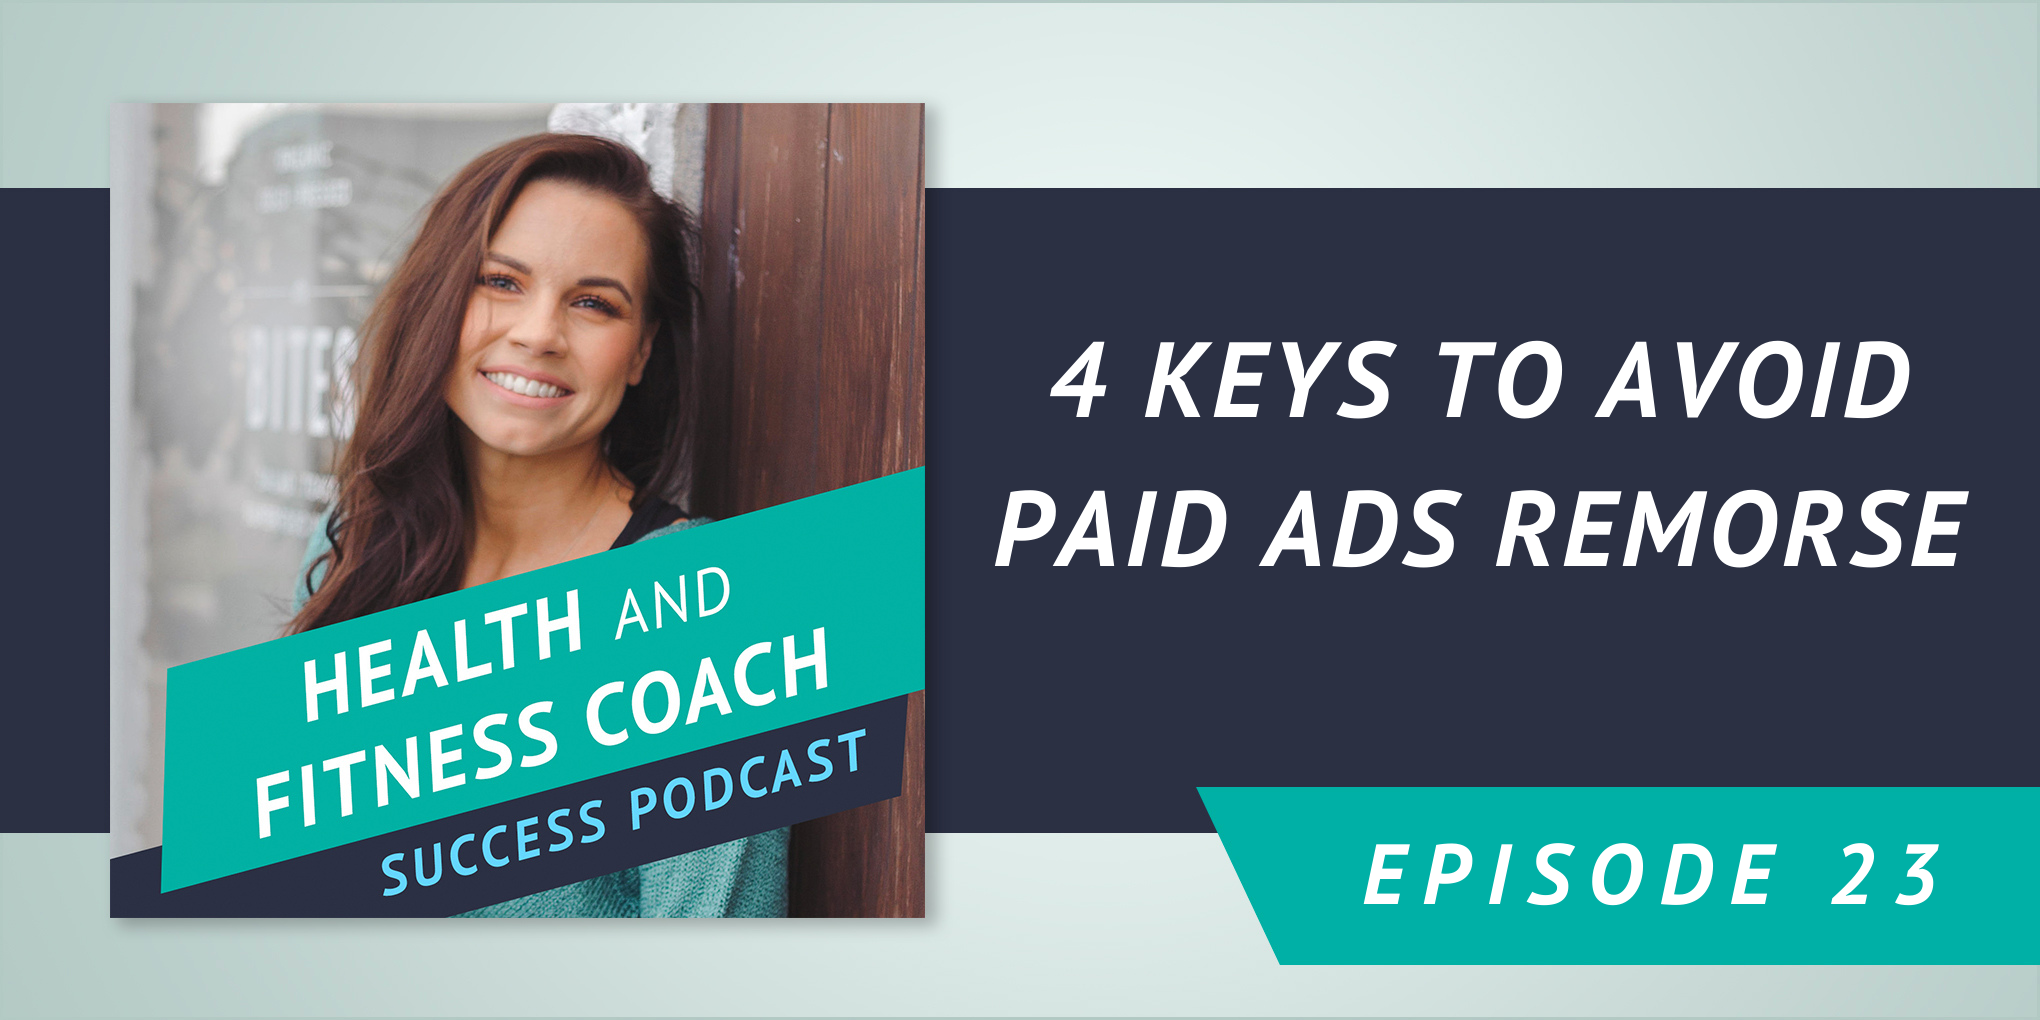 4 Keys to Avoid Paid Ads Remorse